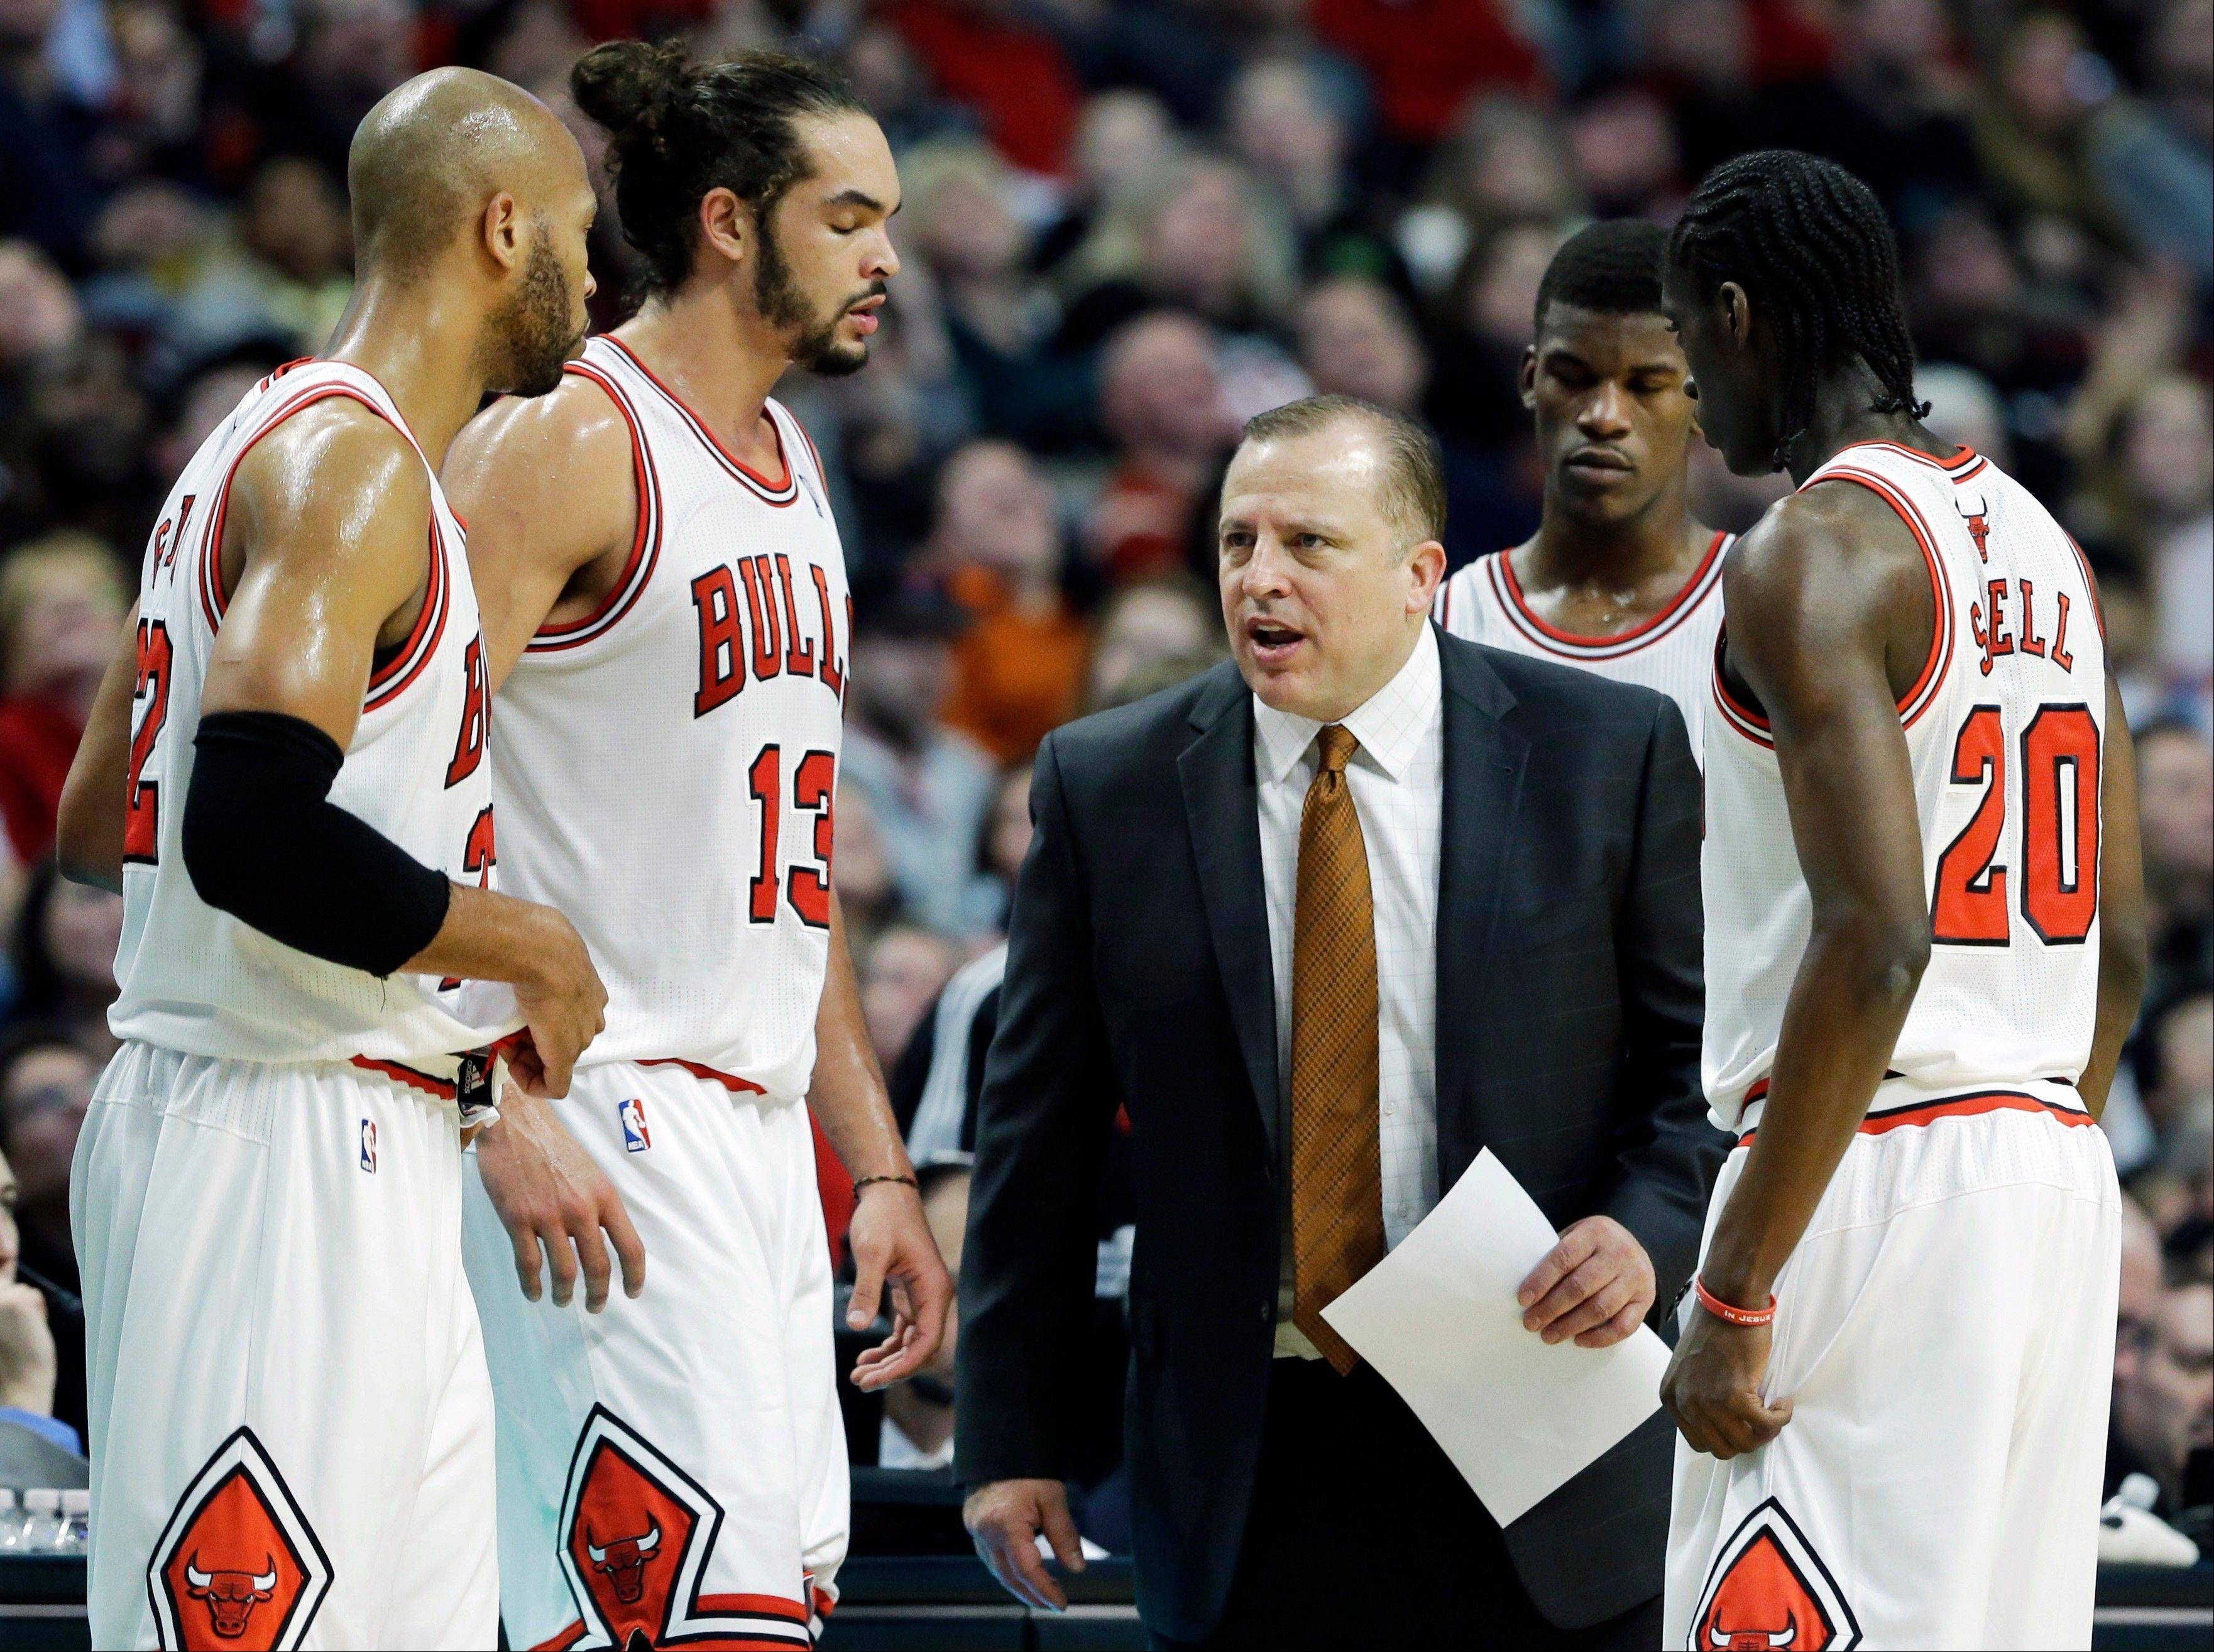 Chicago Bulls head coach Tom Thibodeau talks to his team during the second half of an NBA basketball game against the Dallas Mavericks in Chicago on Saturday, Dec. 28, 2013. The Mavericks won 105-83.